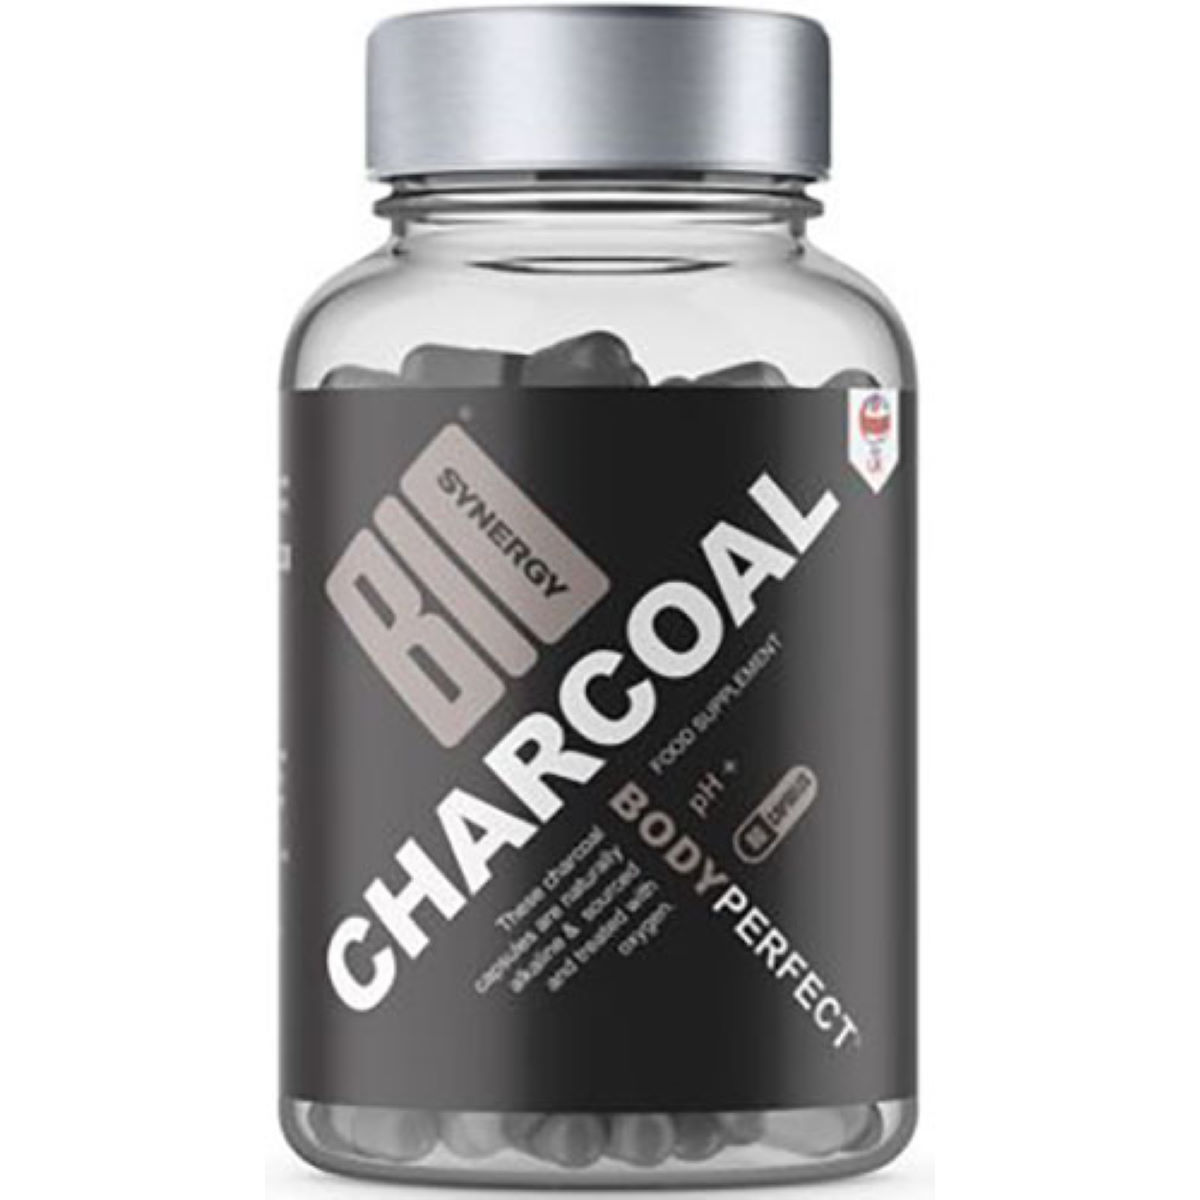 Bio-Synergy Body Perfect Charcoal (60 Capsules) - Vitaminas y suplementos